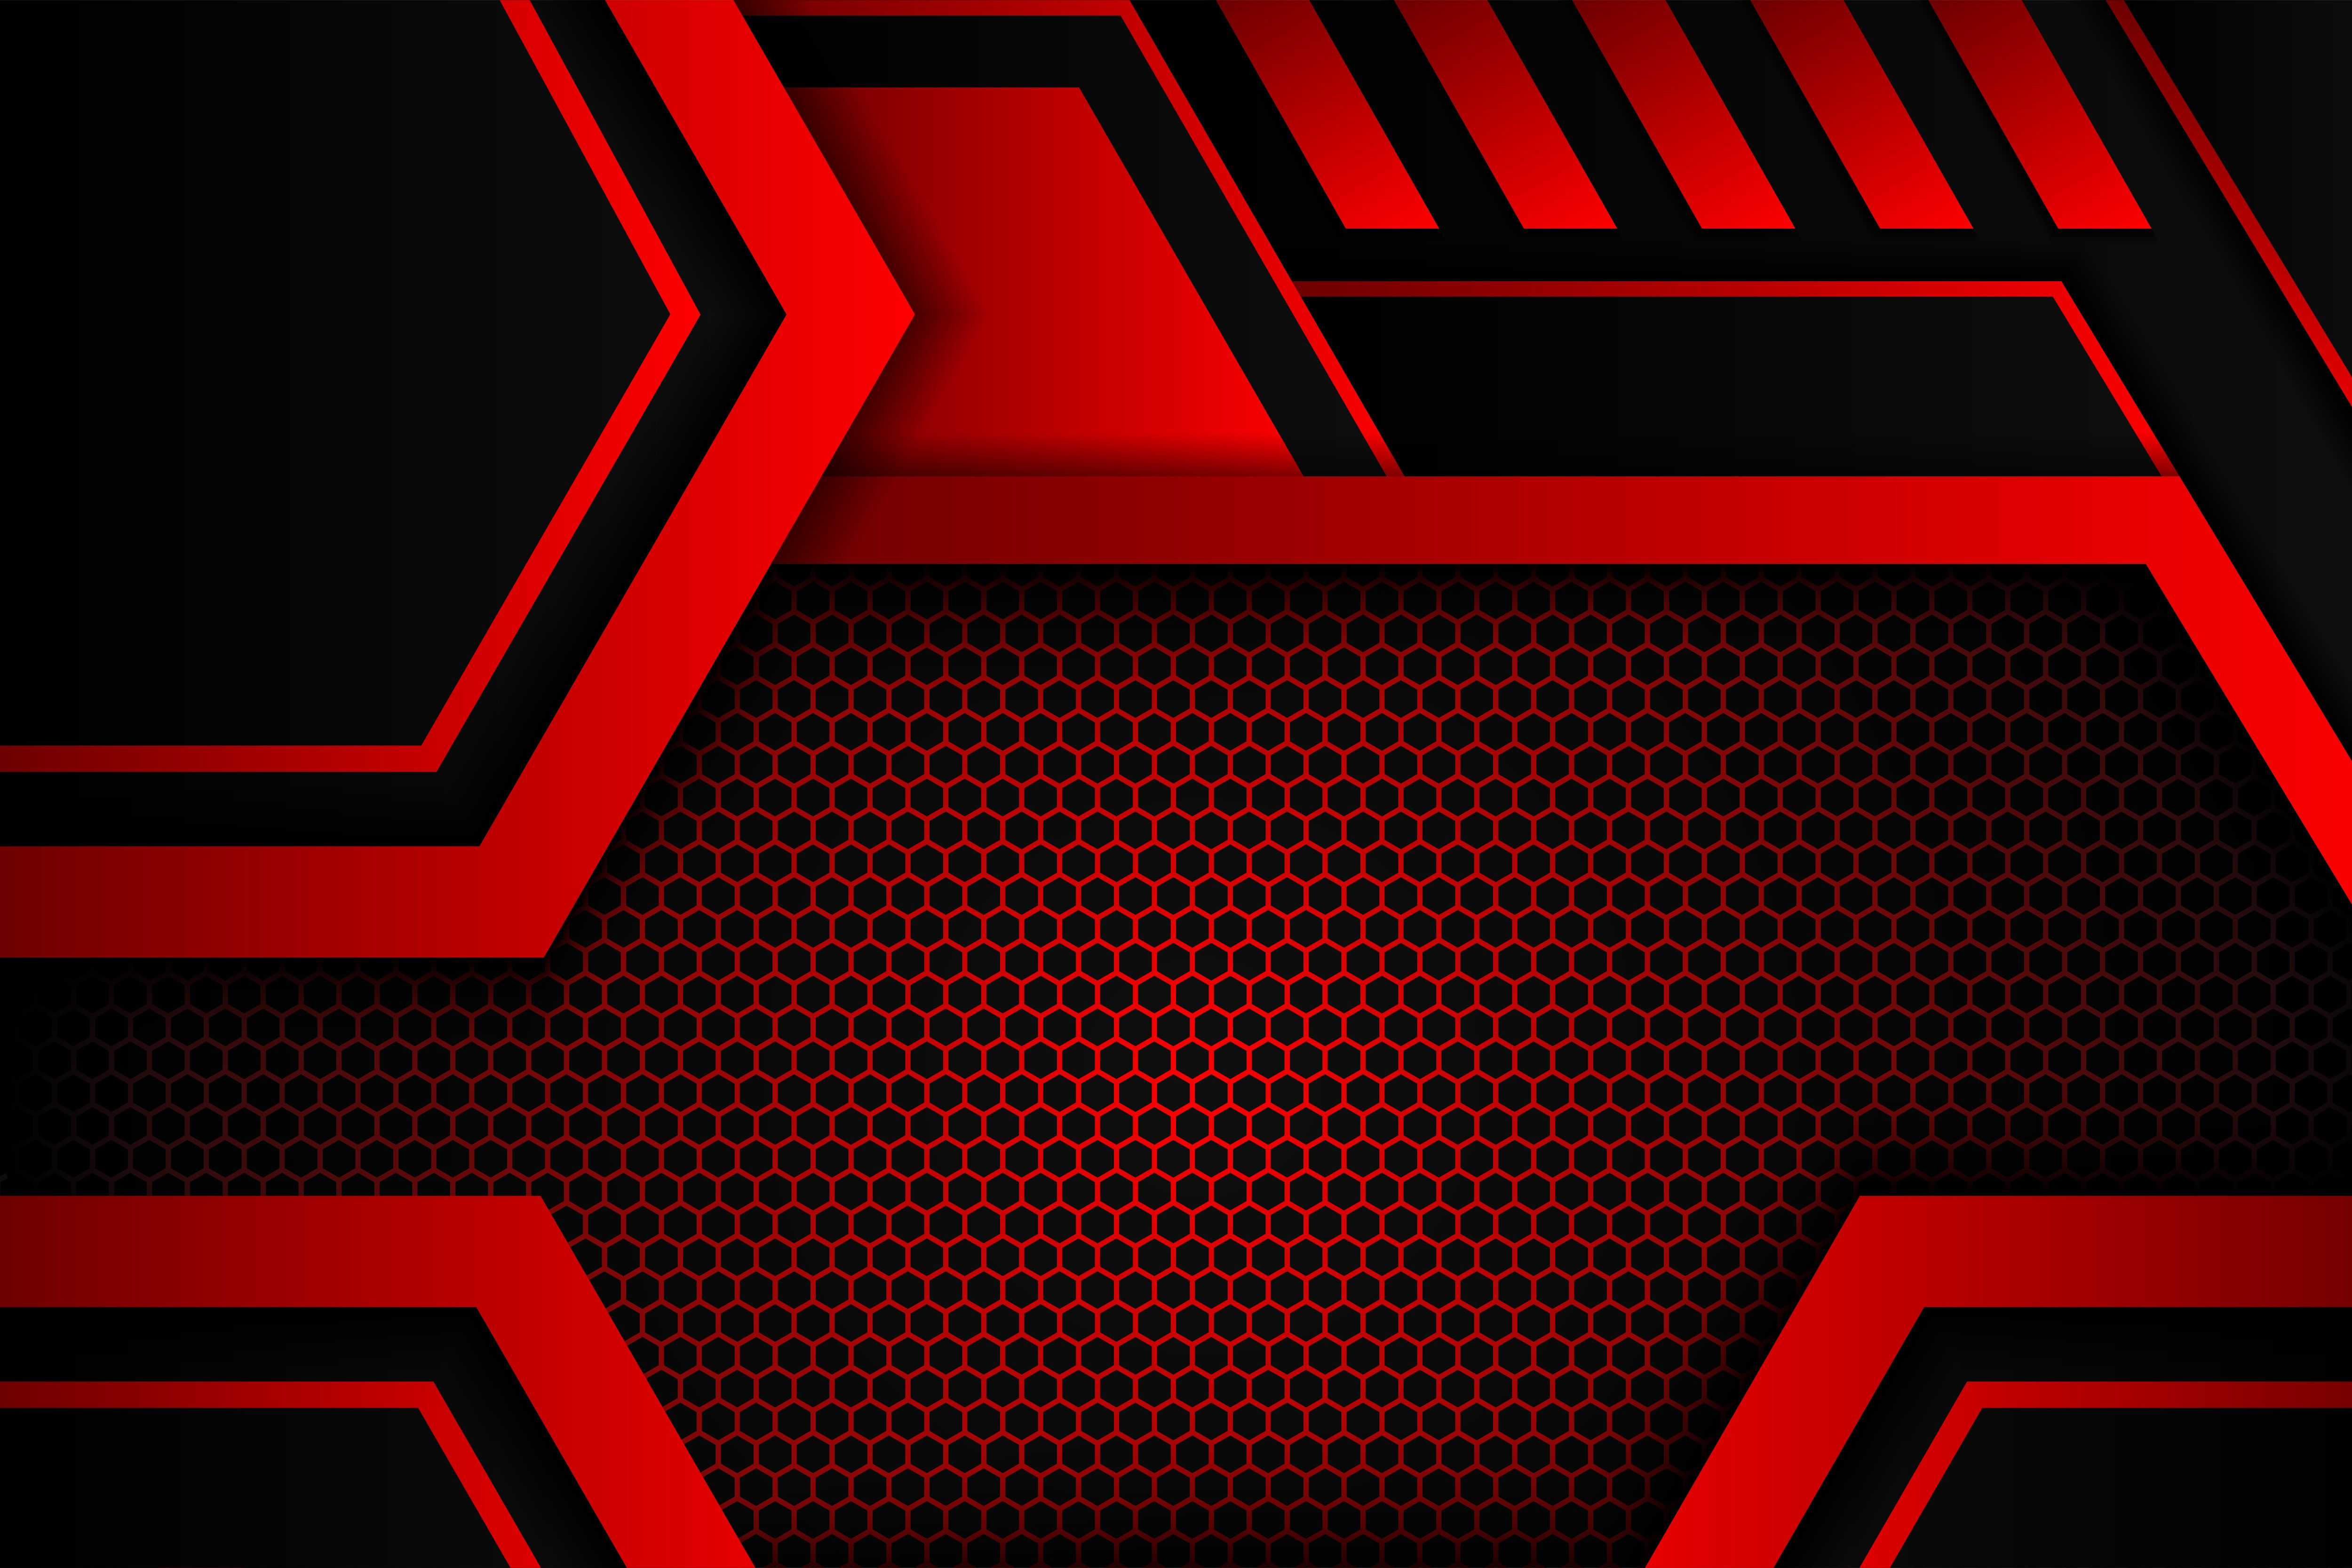 Geometric Red Background Black Graphic By Noory Shopper Creative Fabrica Red Background Dark Red Background Geometric Background